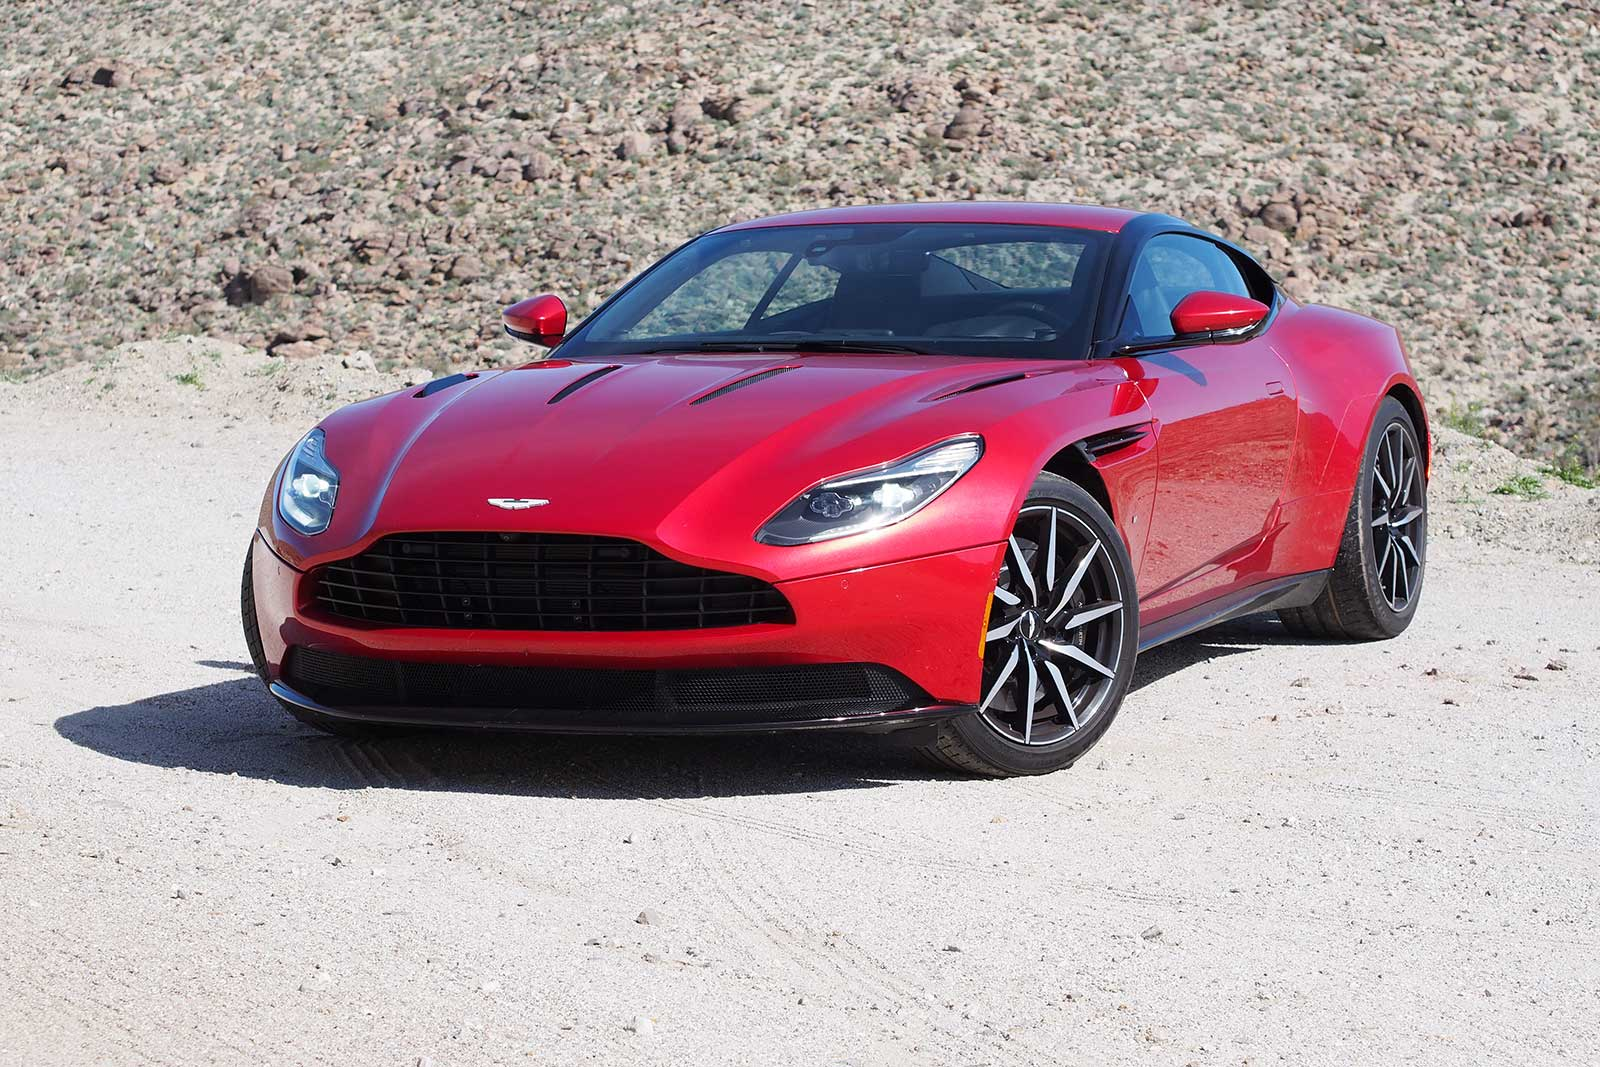 Shaker Kit FG GT And GS 5 0 Lt Only moreover Watch moreover 2017 Aston Martin Db11 Review additionally Must74g5 additionally . on 3 8 mustang engine